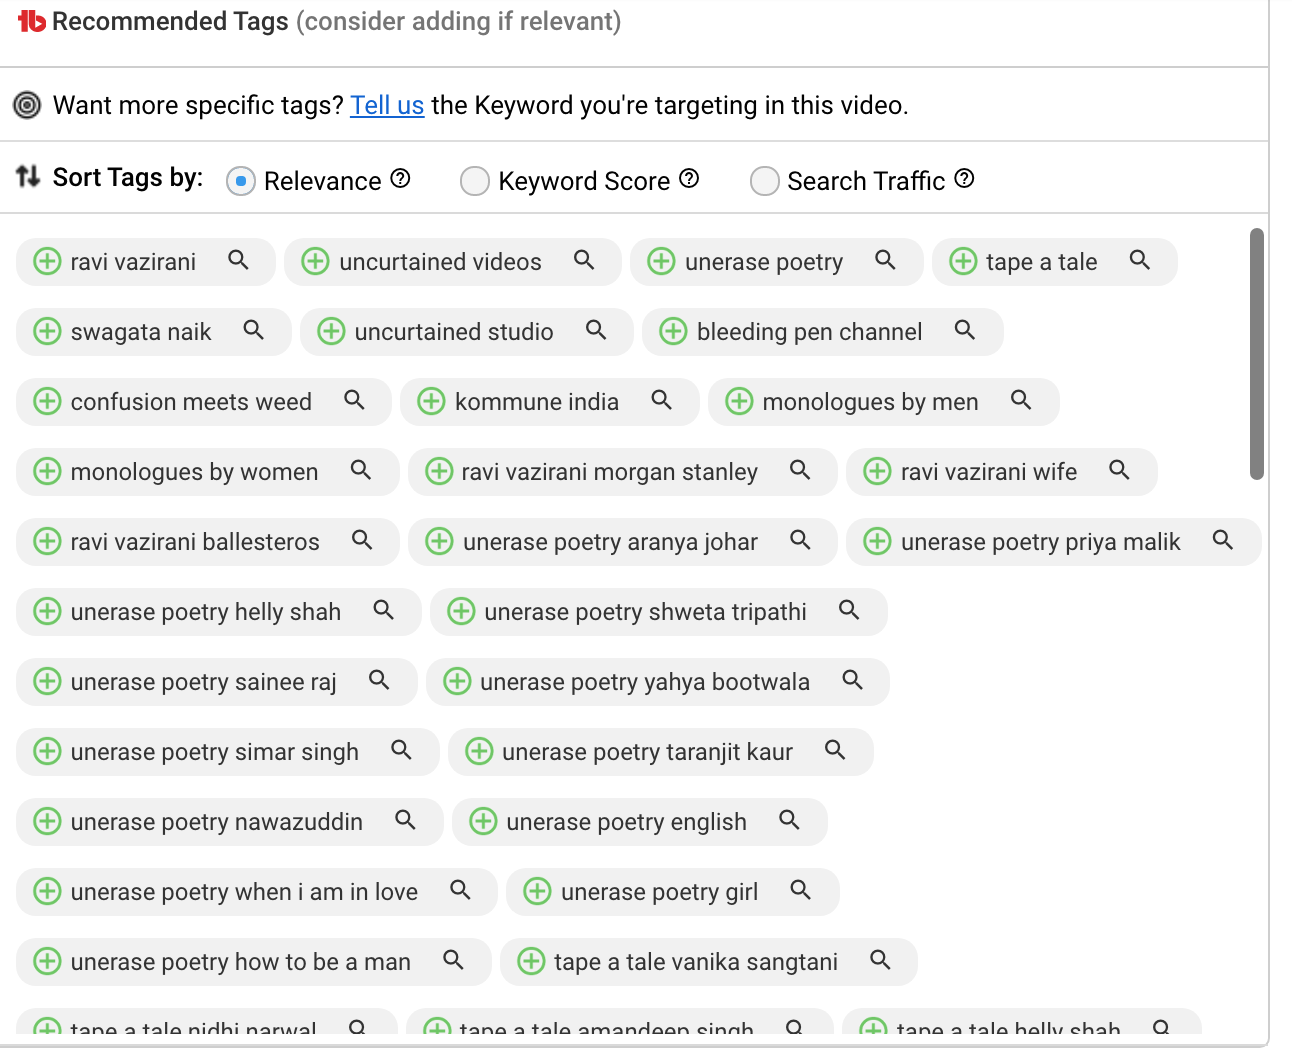 TubeBuddy recommends tags for your video based on the main keyword you have targeted.